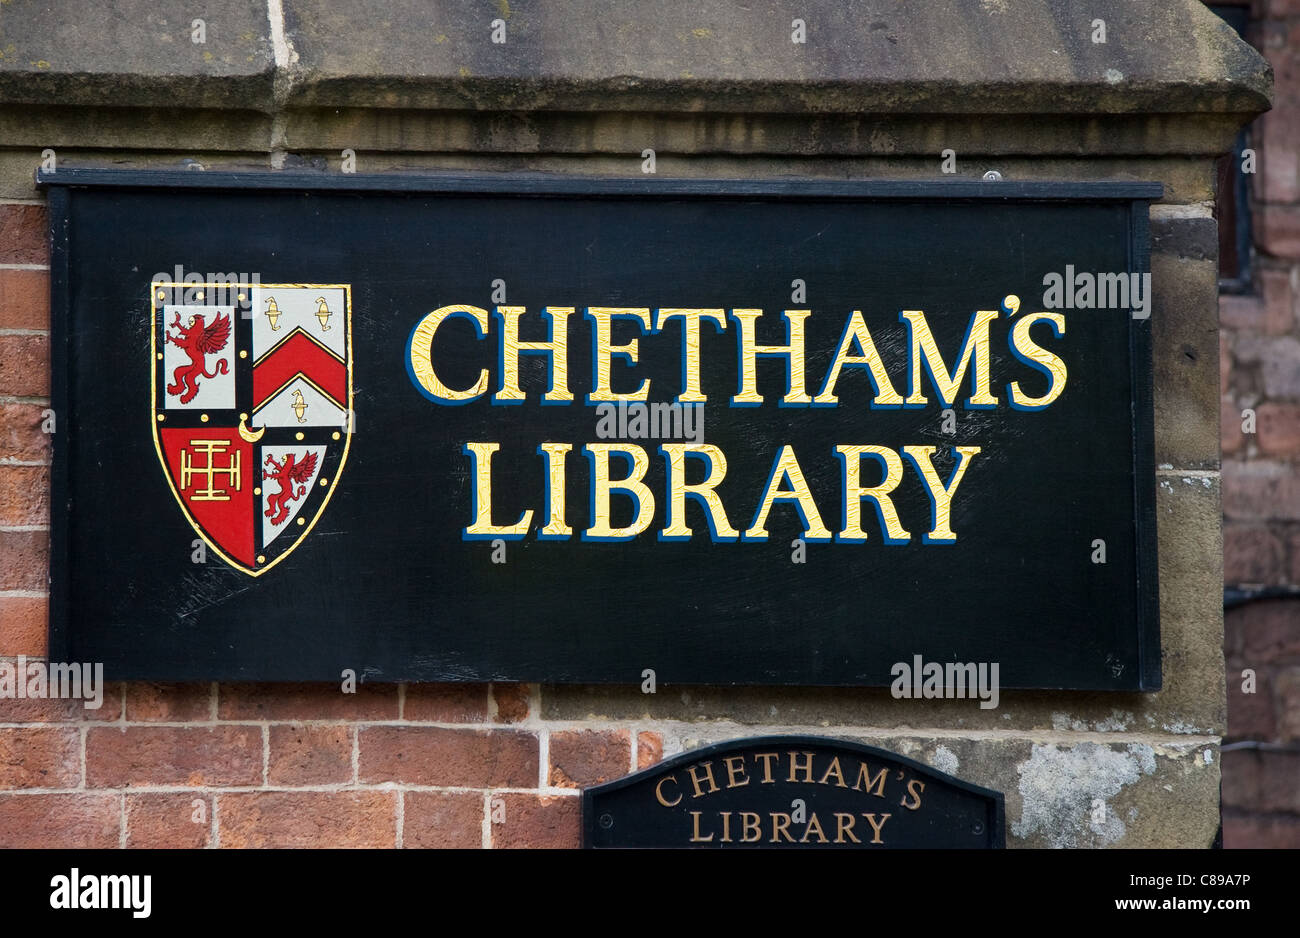 Chetham's Library + School of Music, Long Millgate, city centre, Manchester, UK - Stock Image